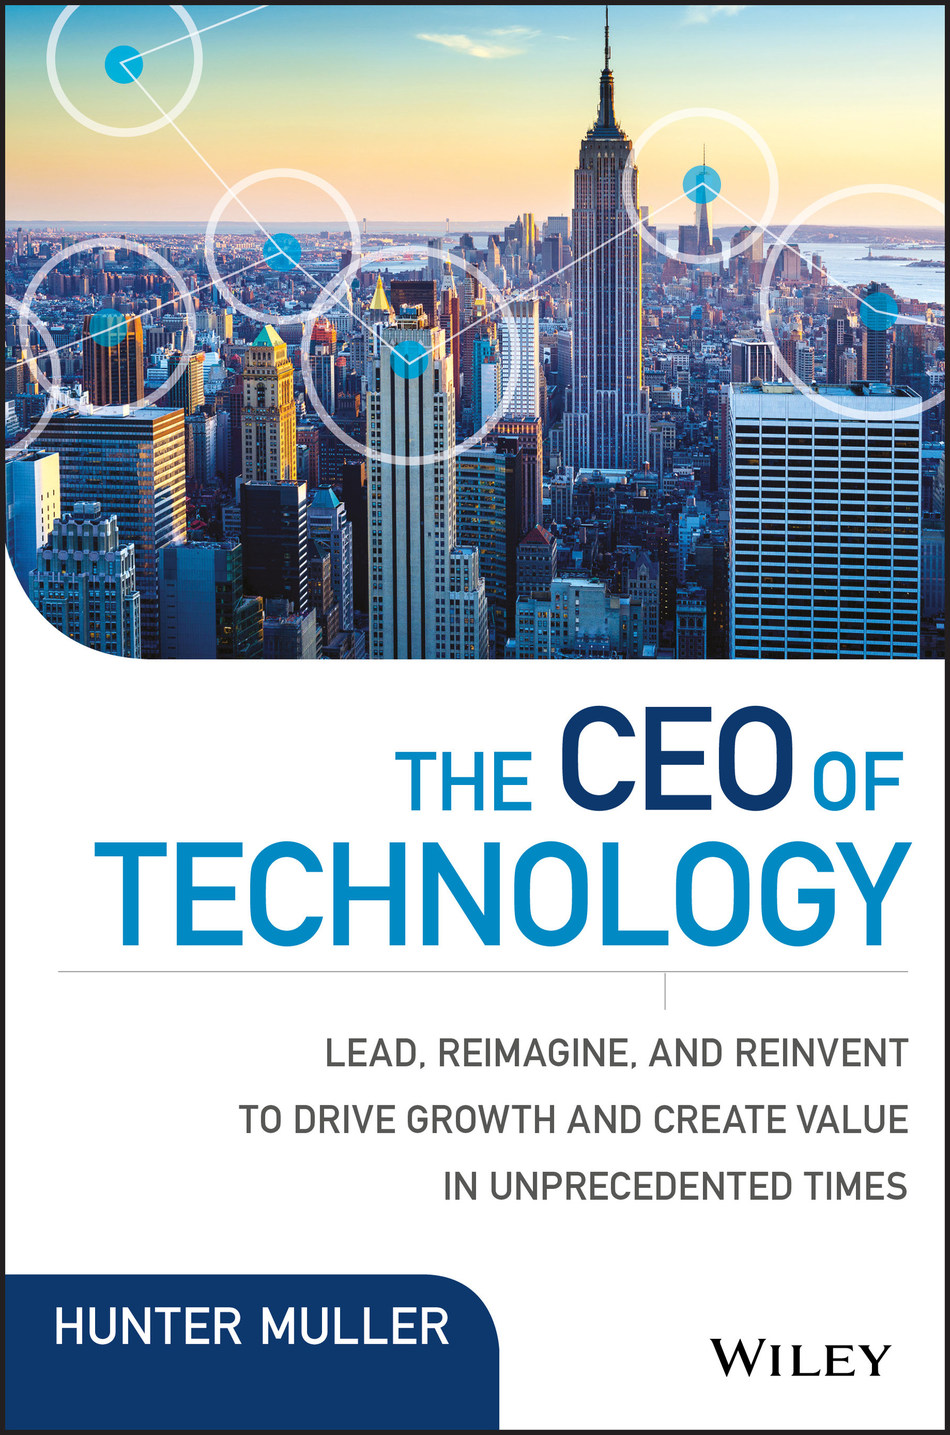 Hunter Muller's 'The CEO of Technology'